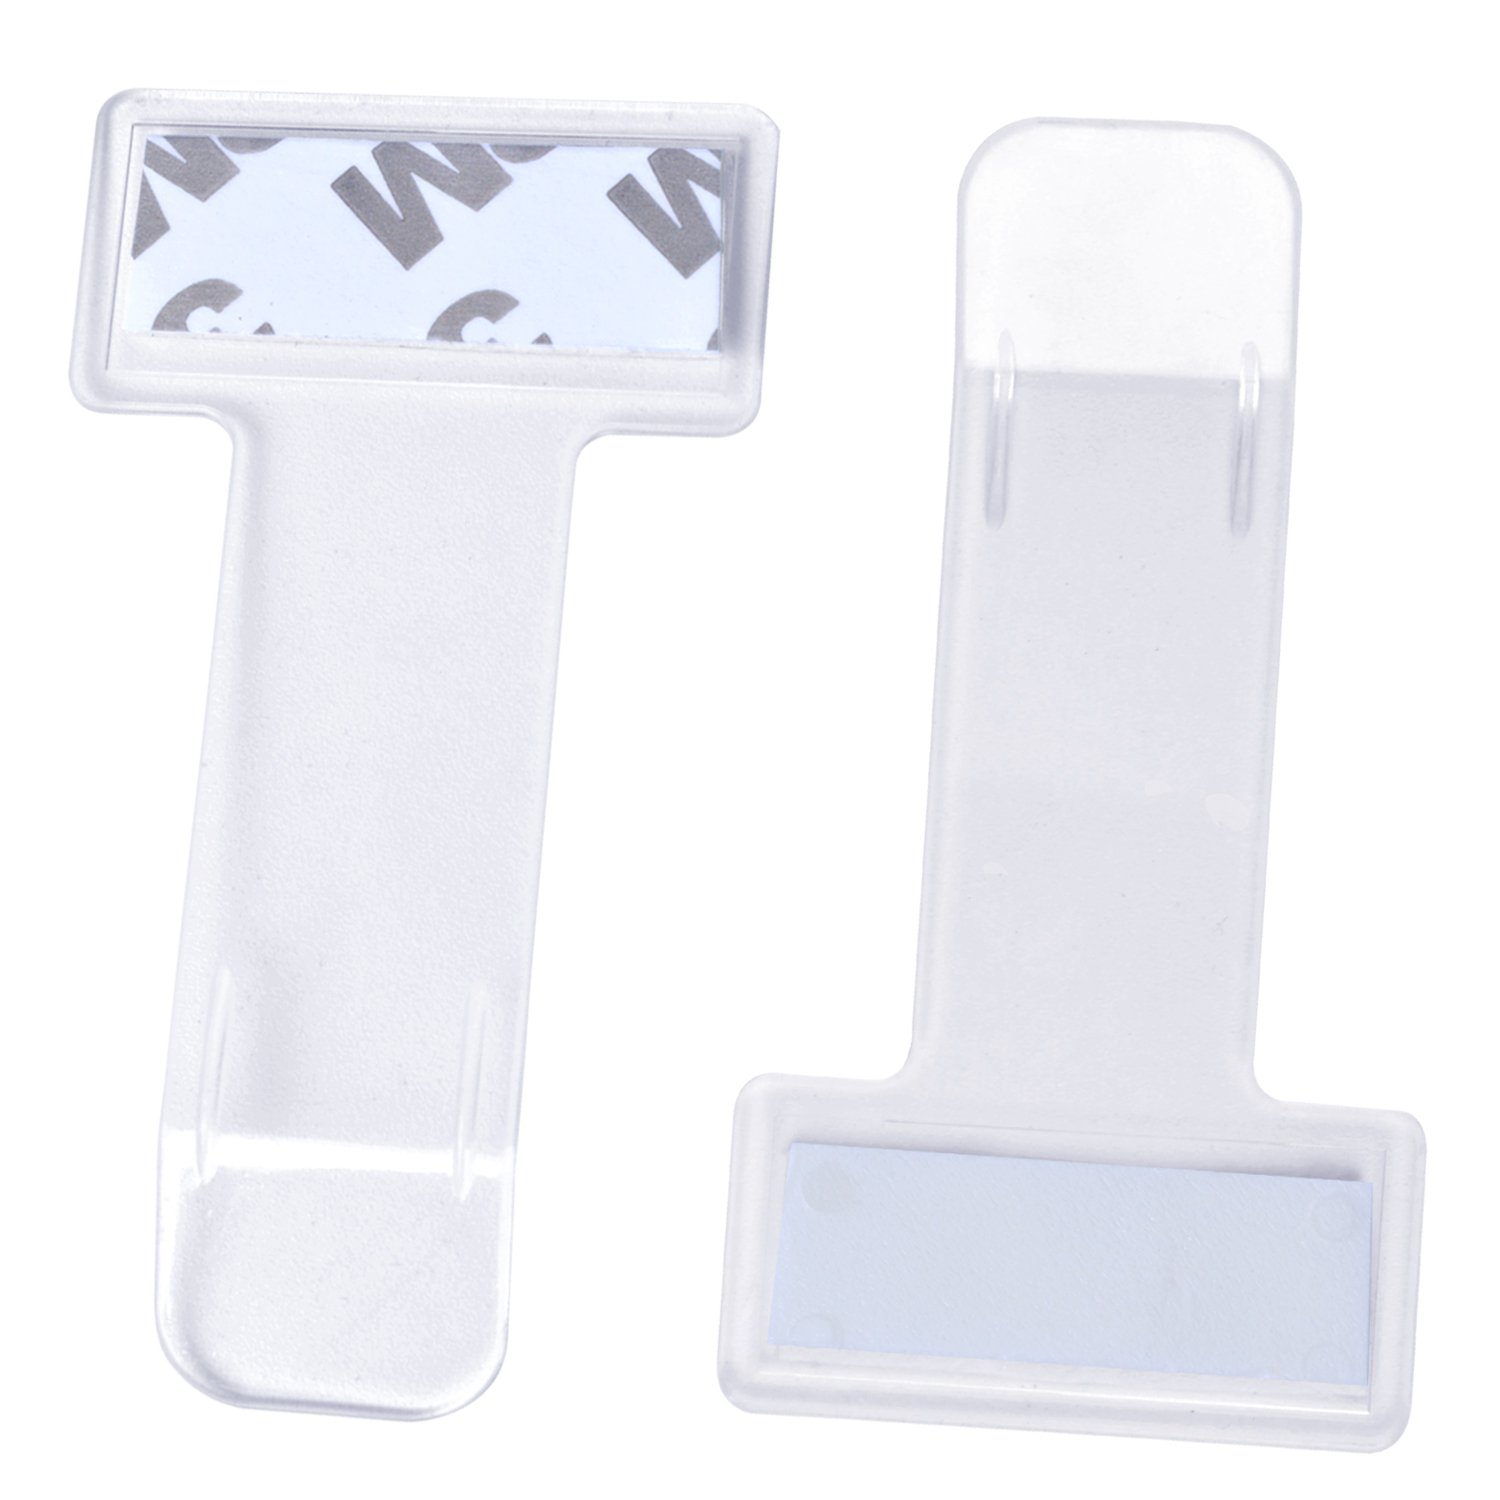 euhuton 10pcs Parking Permit Holders ID Badge Holders Clear Plastic Pocket Pouches for Car Windscreen 2 Sizes